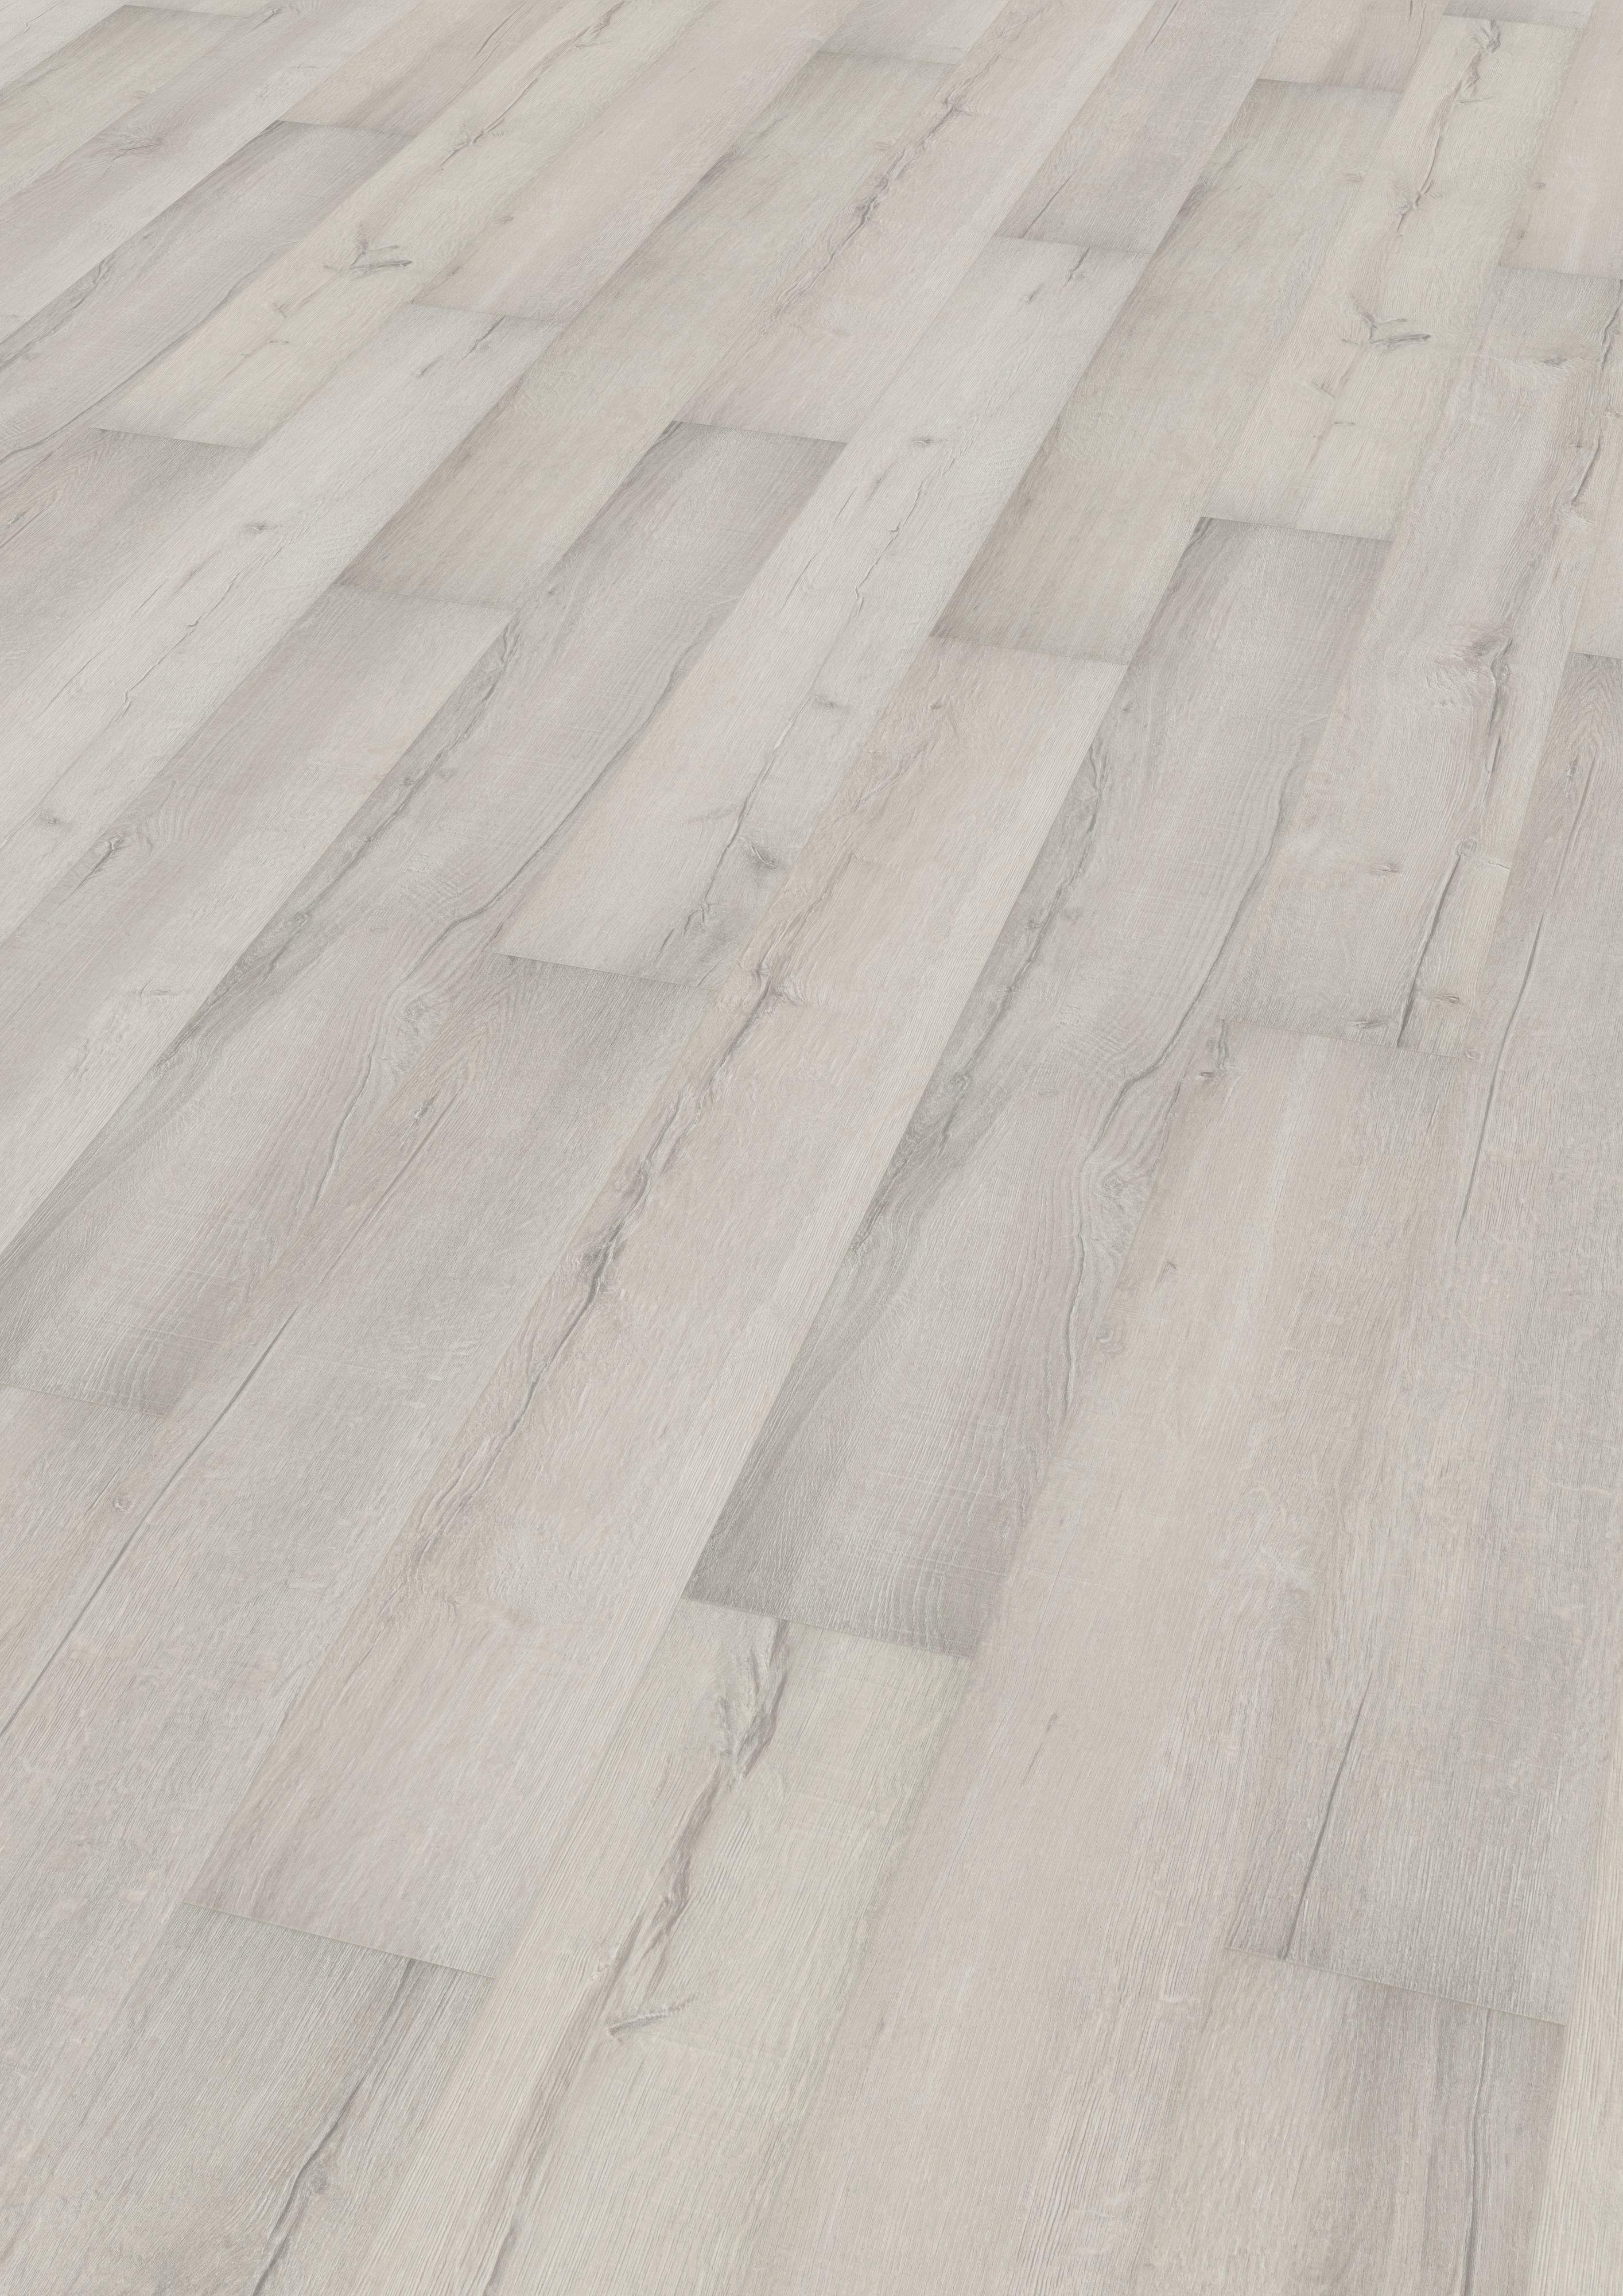 La041sv4 tirol oak grey